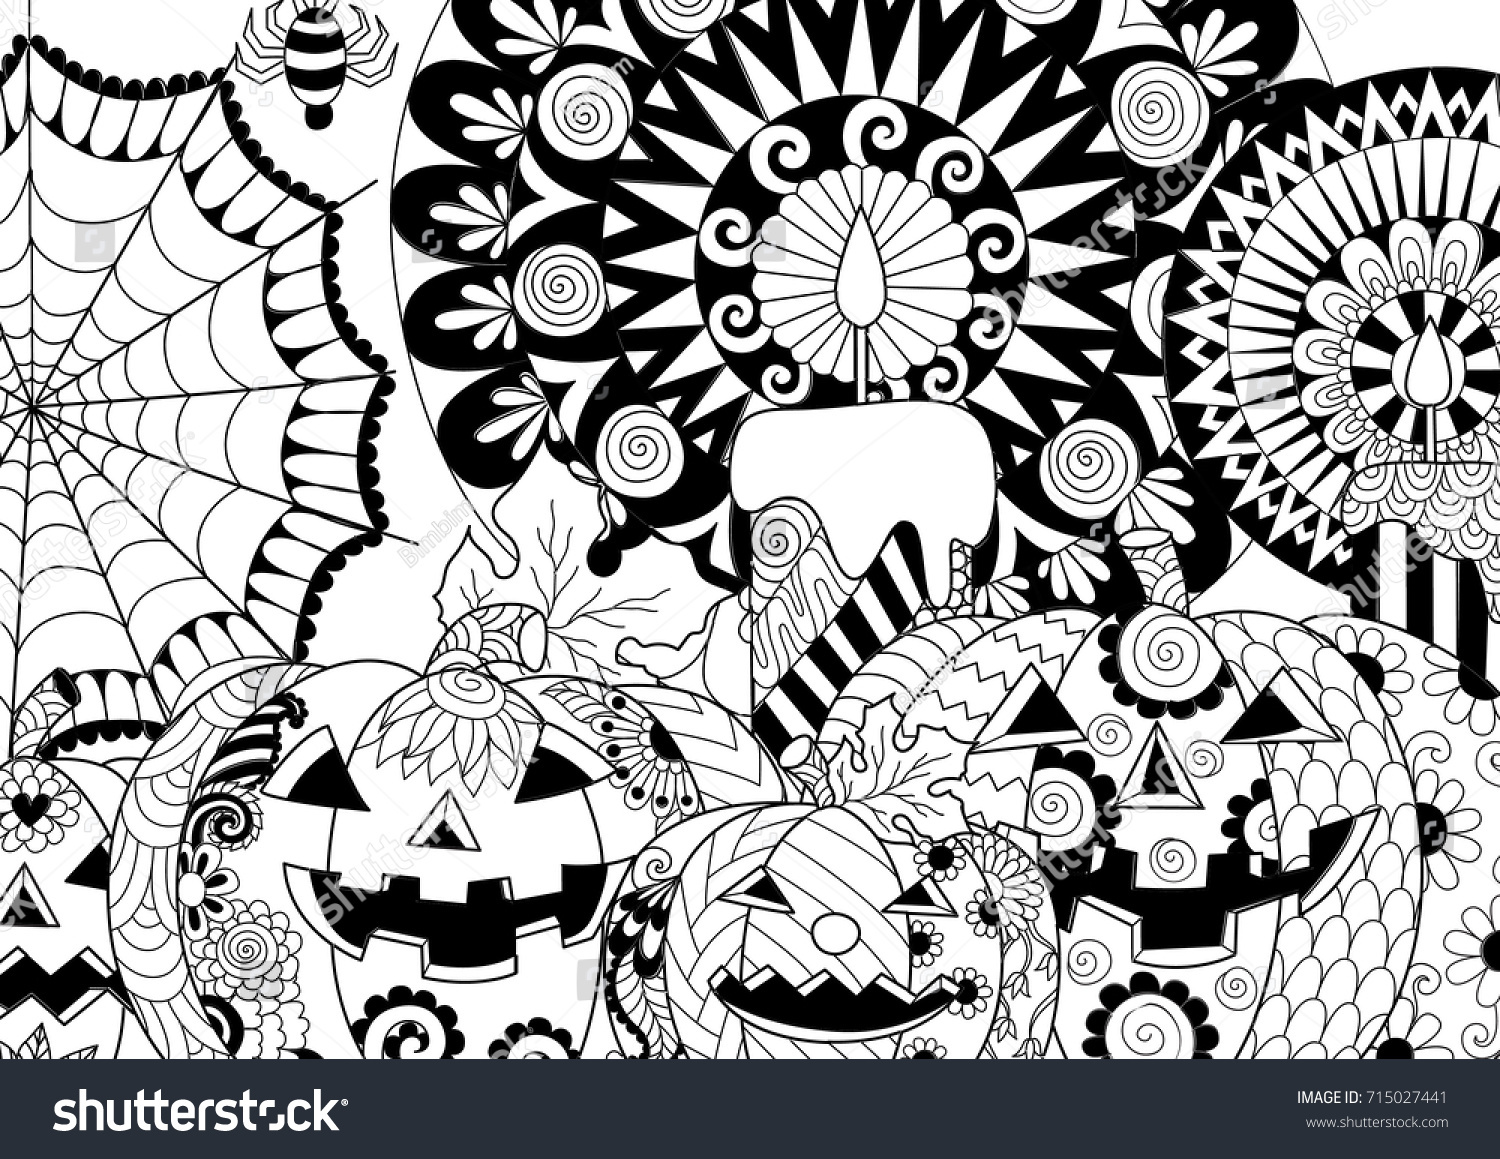 Mehndi Elephant Coloring Pages : Halloween pumpkincandlesspidercobweb adult coloring book page